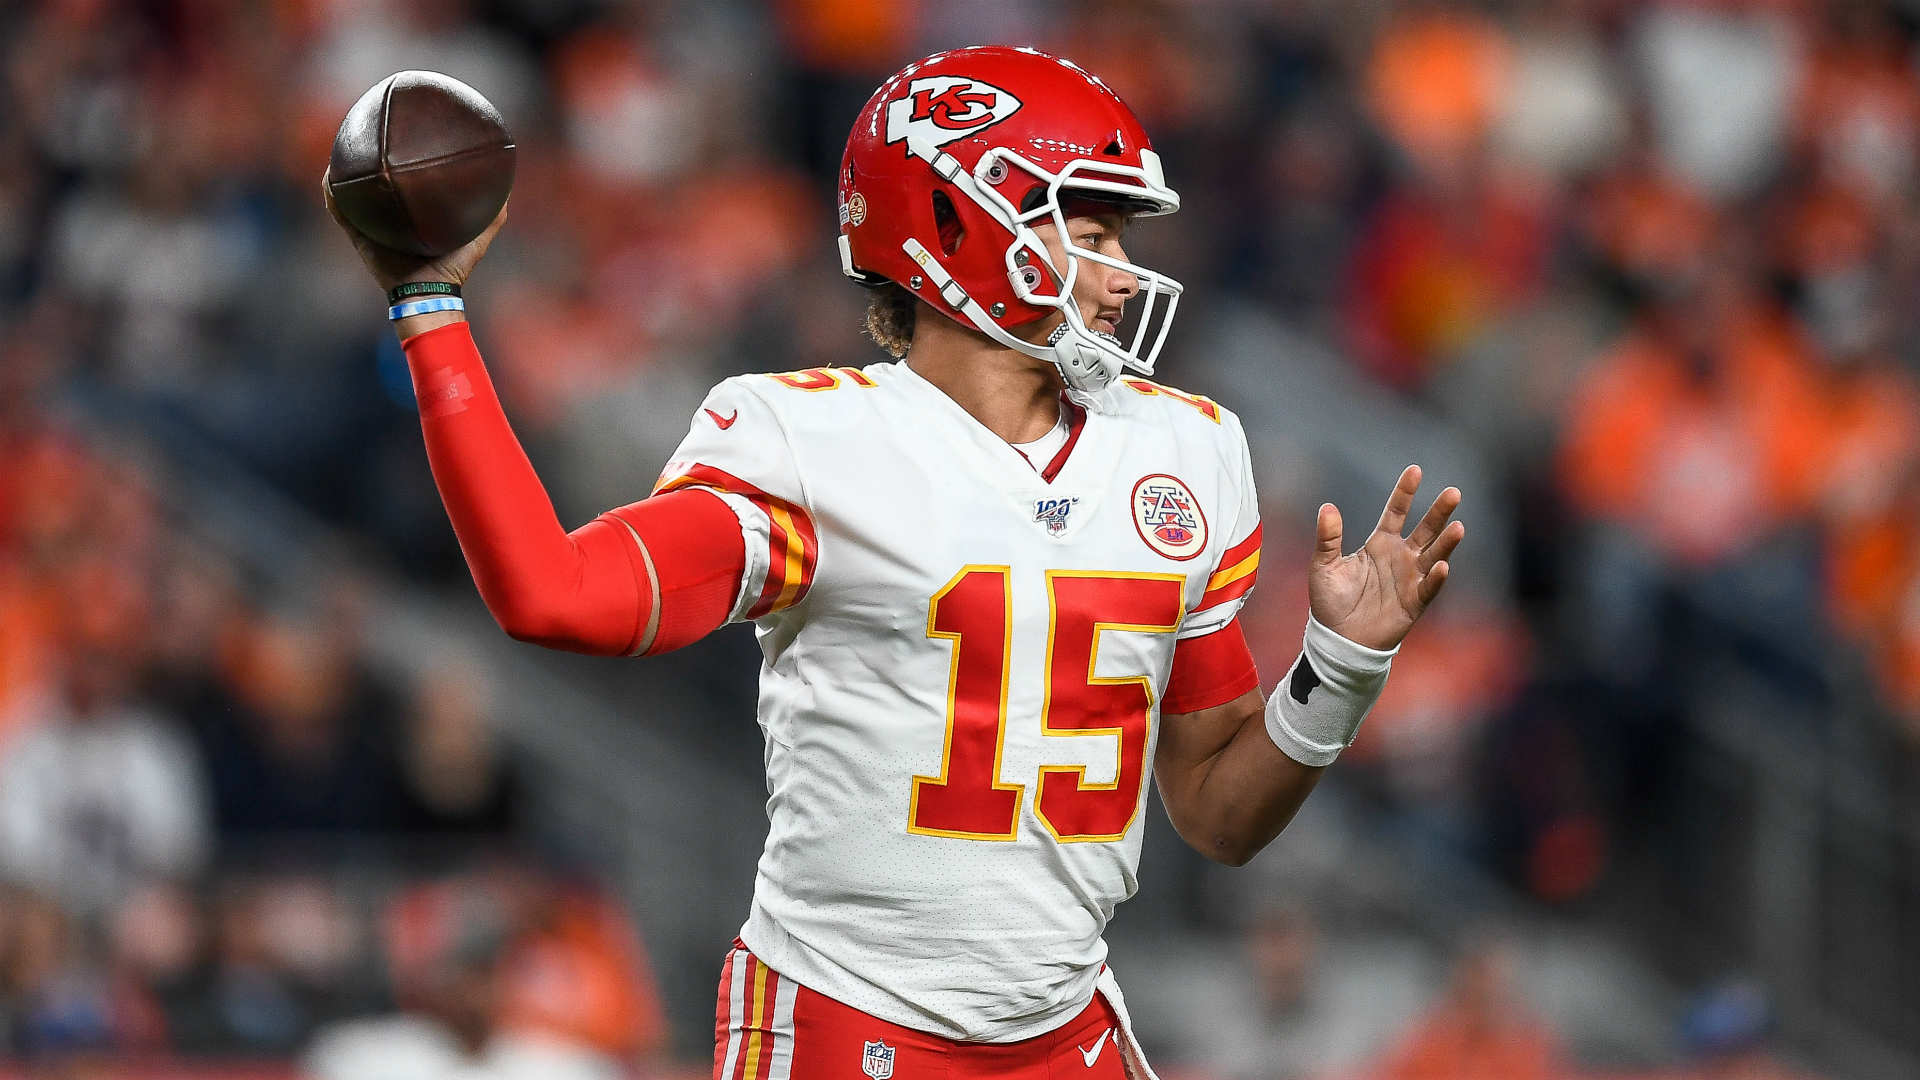 Patrick Mahomes etched himself into the history books prior to leaving the game with a knee injury.